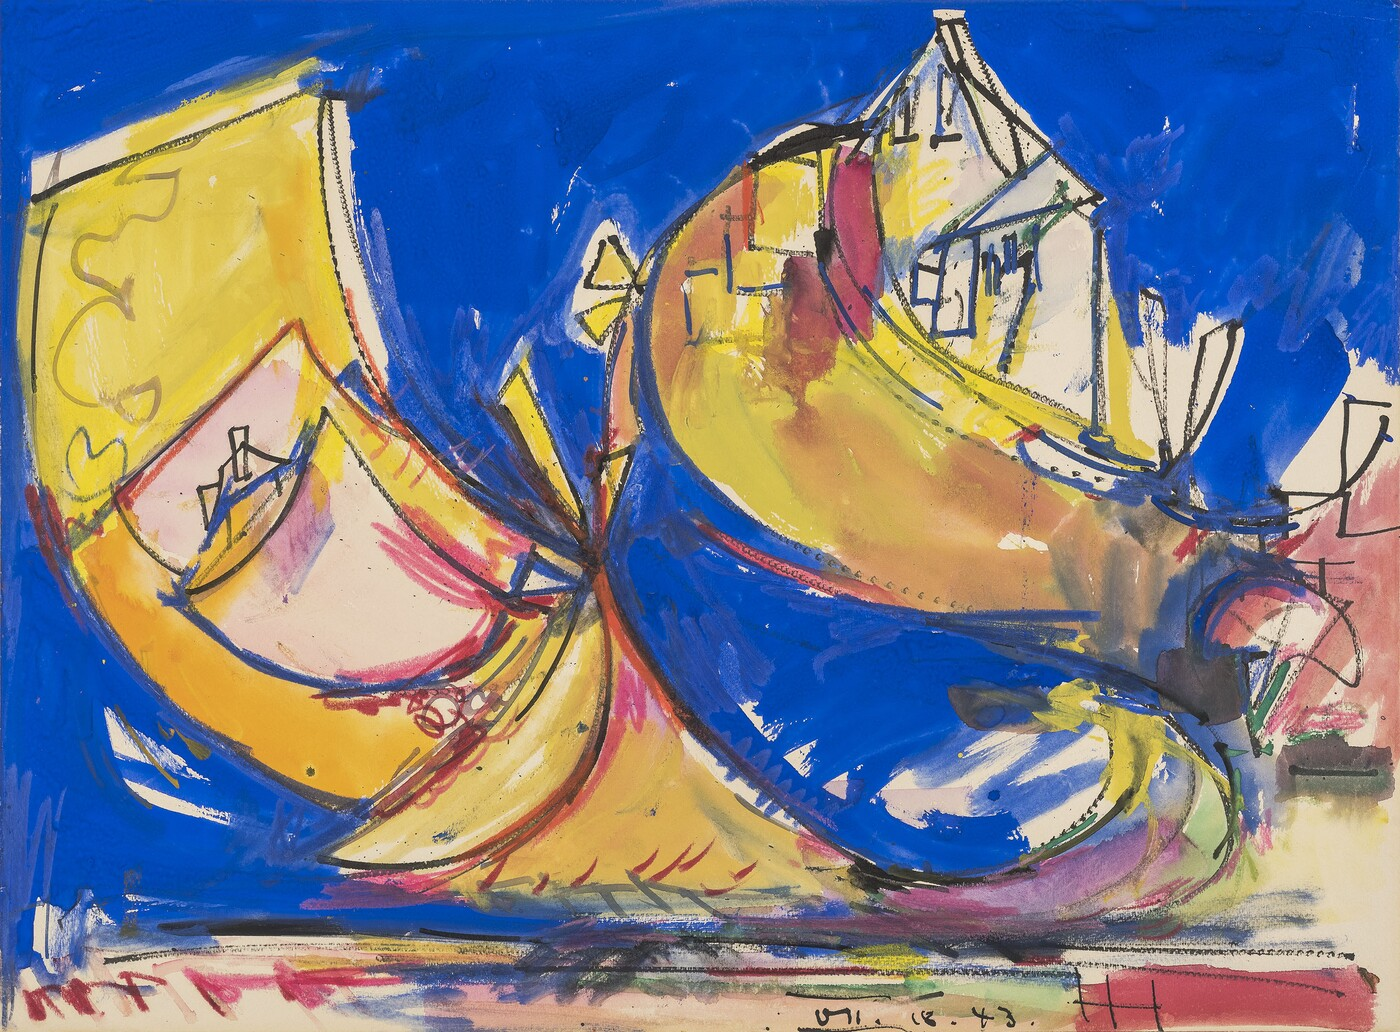 Hans Hofmann (1880–1966), Untitled, 1943, Tempera, transparent watercolor, crayon, and ink on paper